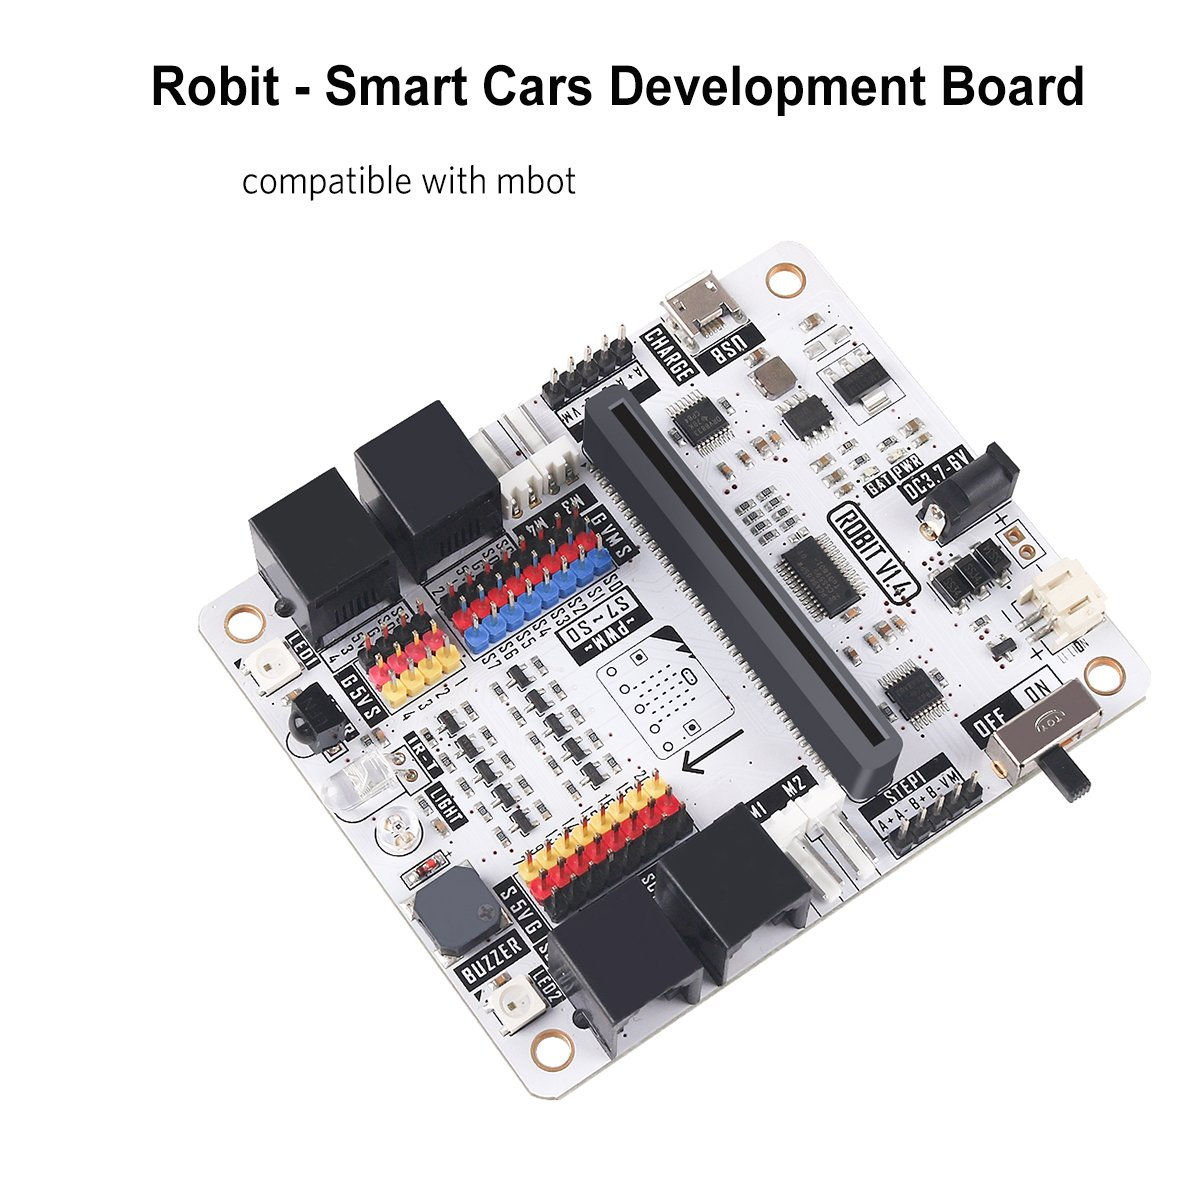 Seamuing Robit Smart Cars Robot Development Board Support 8 Channel G-5V-S Digital Signal Connectors Connect OCTOPUS Electric Brick, Compatible with MBOT